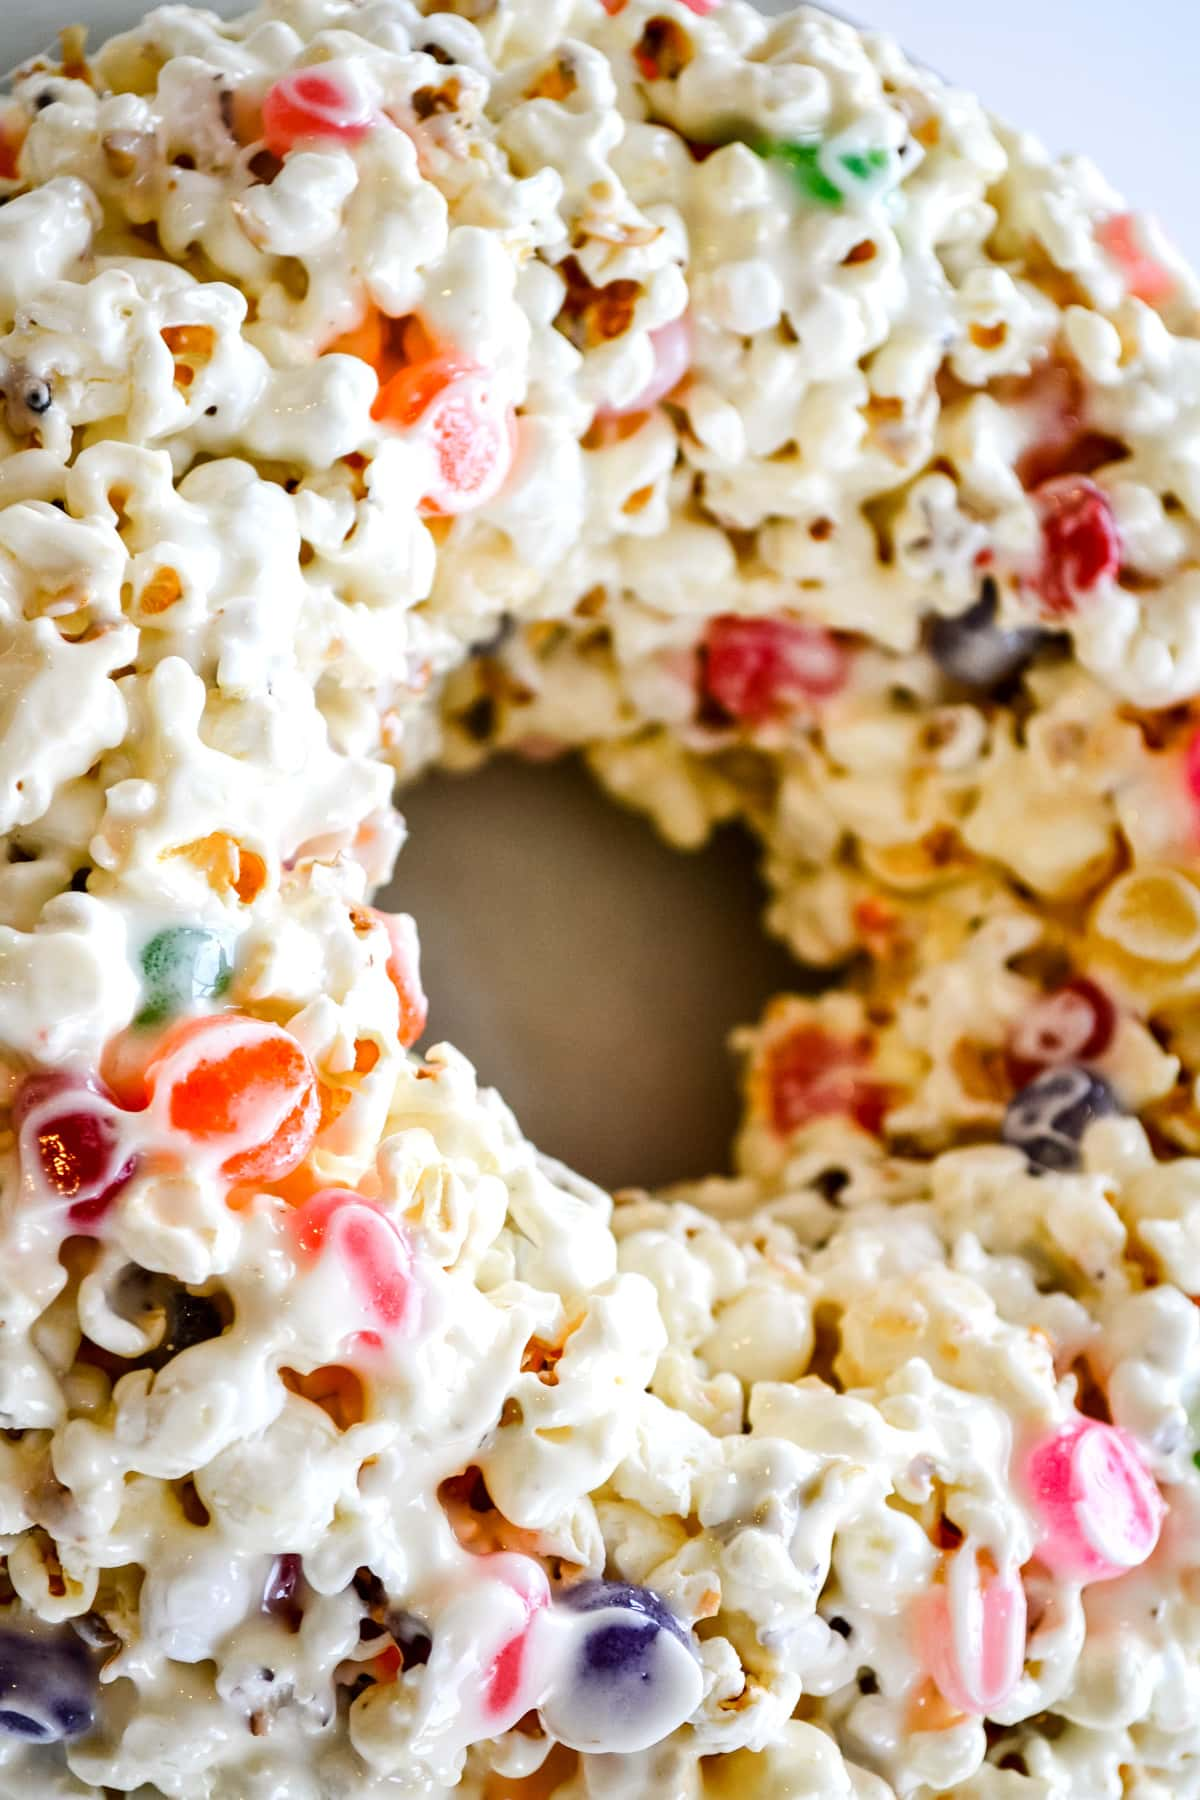 Popcorn Marshmallow Cake with Candy